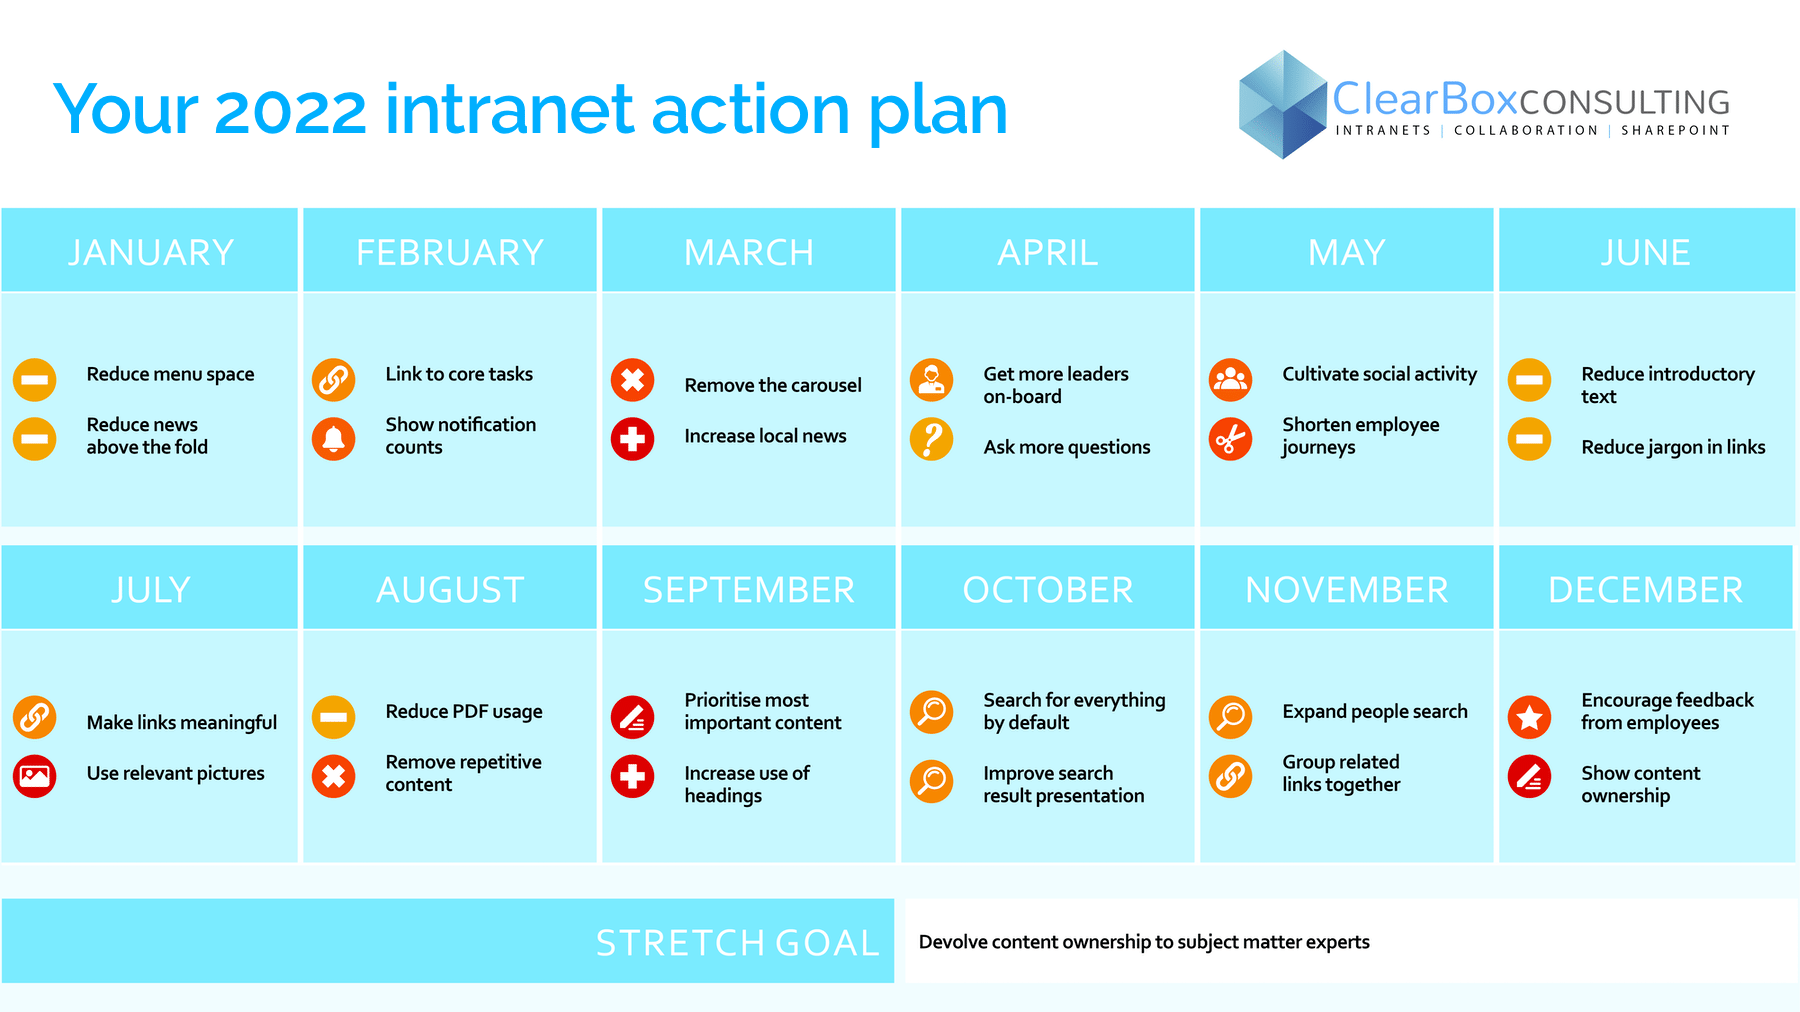 Example year plan showing personalised priority actions to improve your intranet per month.